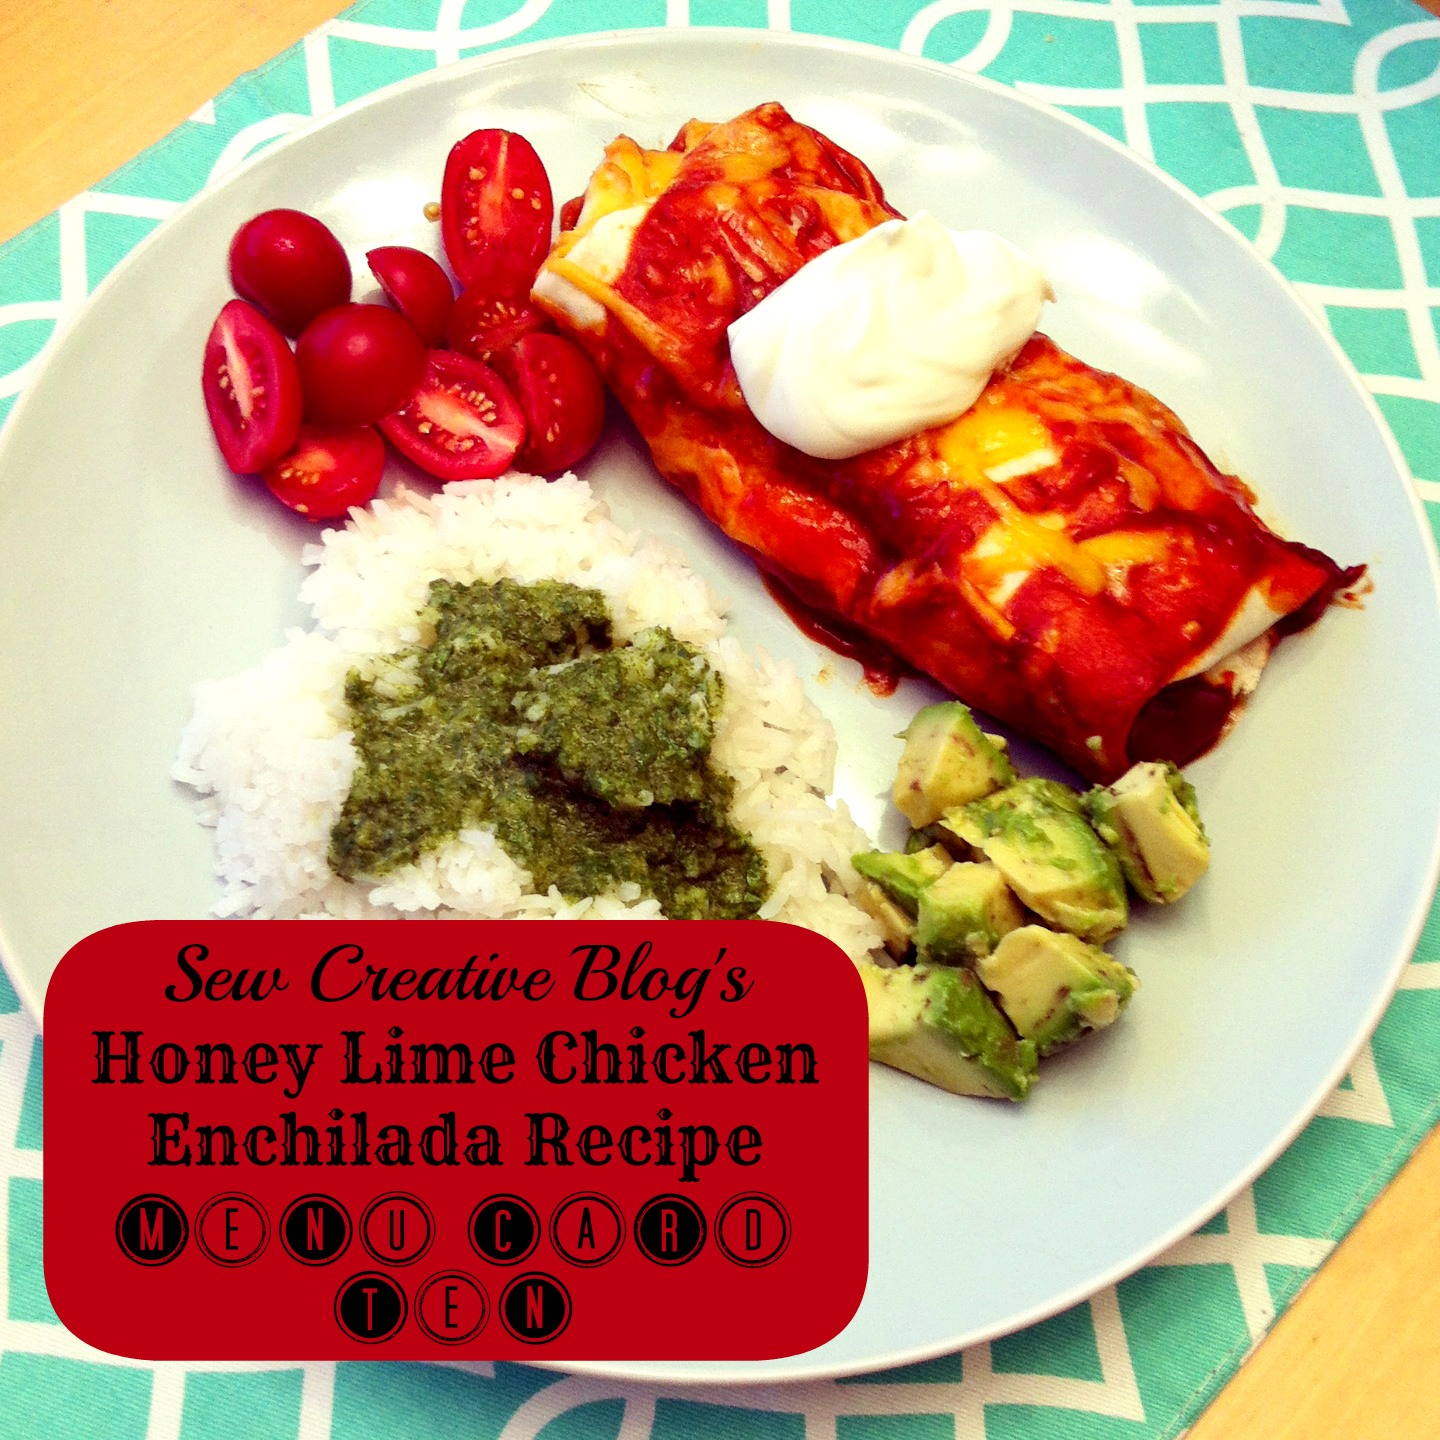 Honey Lime Chicken Enchilada Recipe Menu Card 10